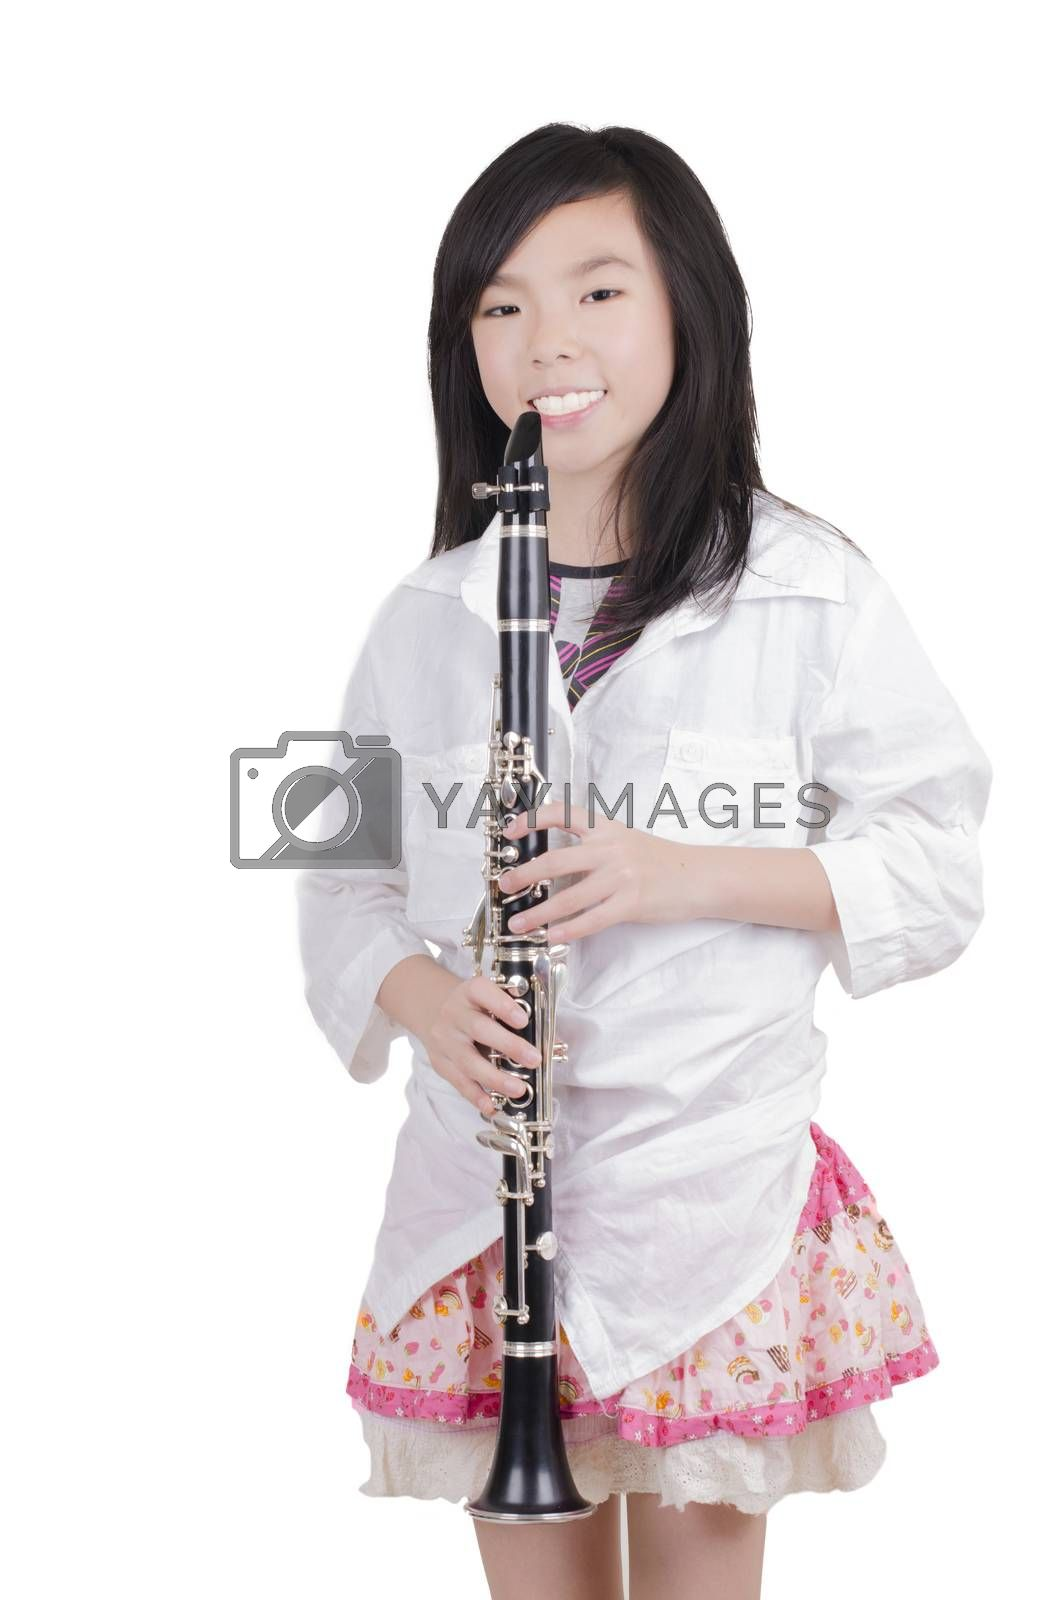 Royalty free image of Beauty girl blowing instrument by FrankyLiu